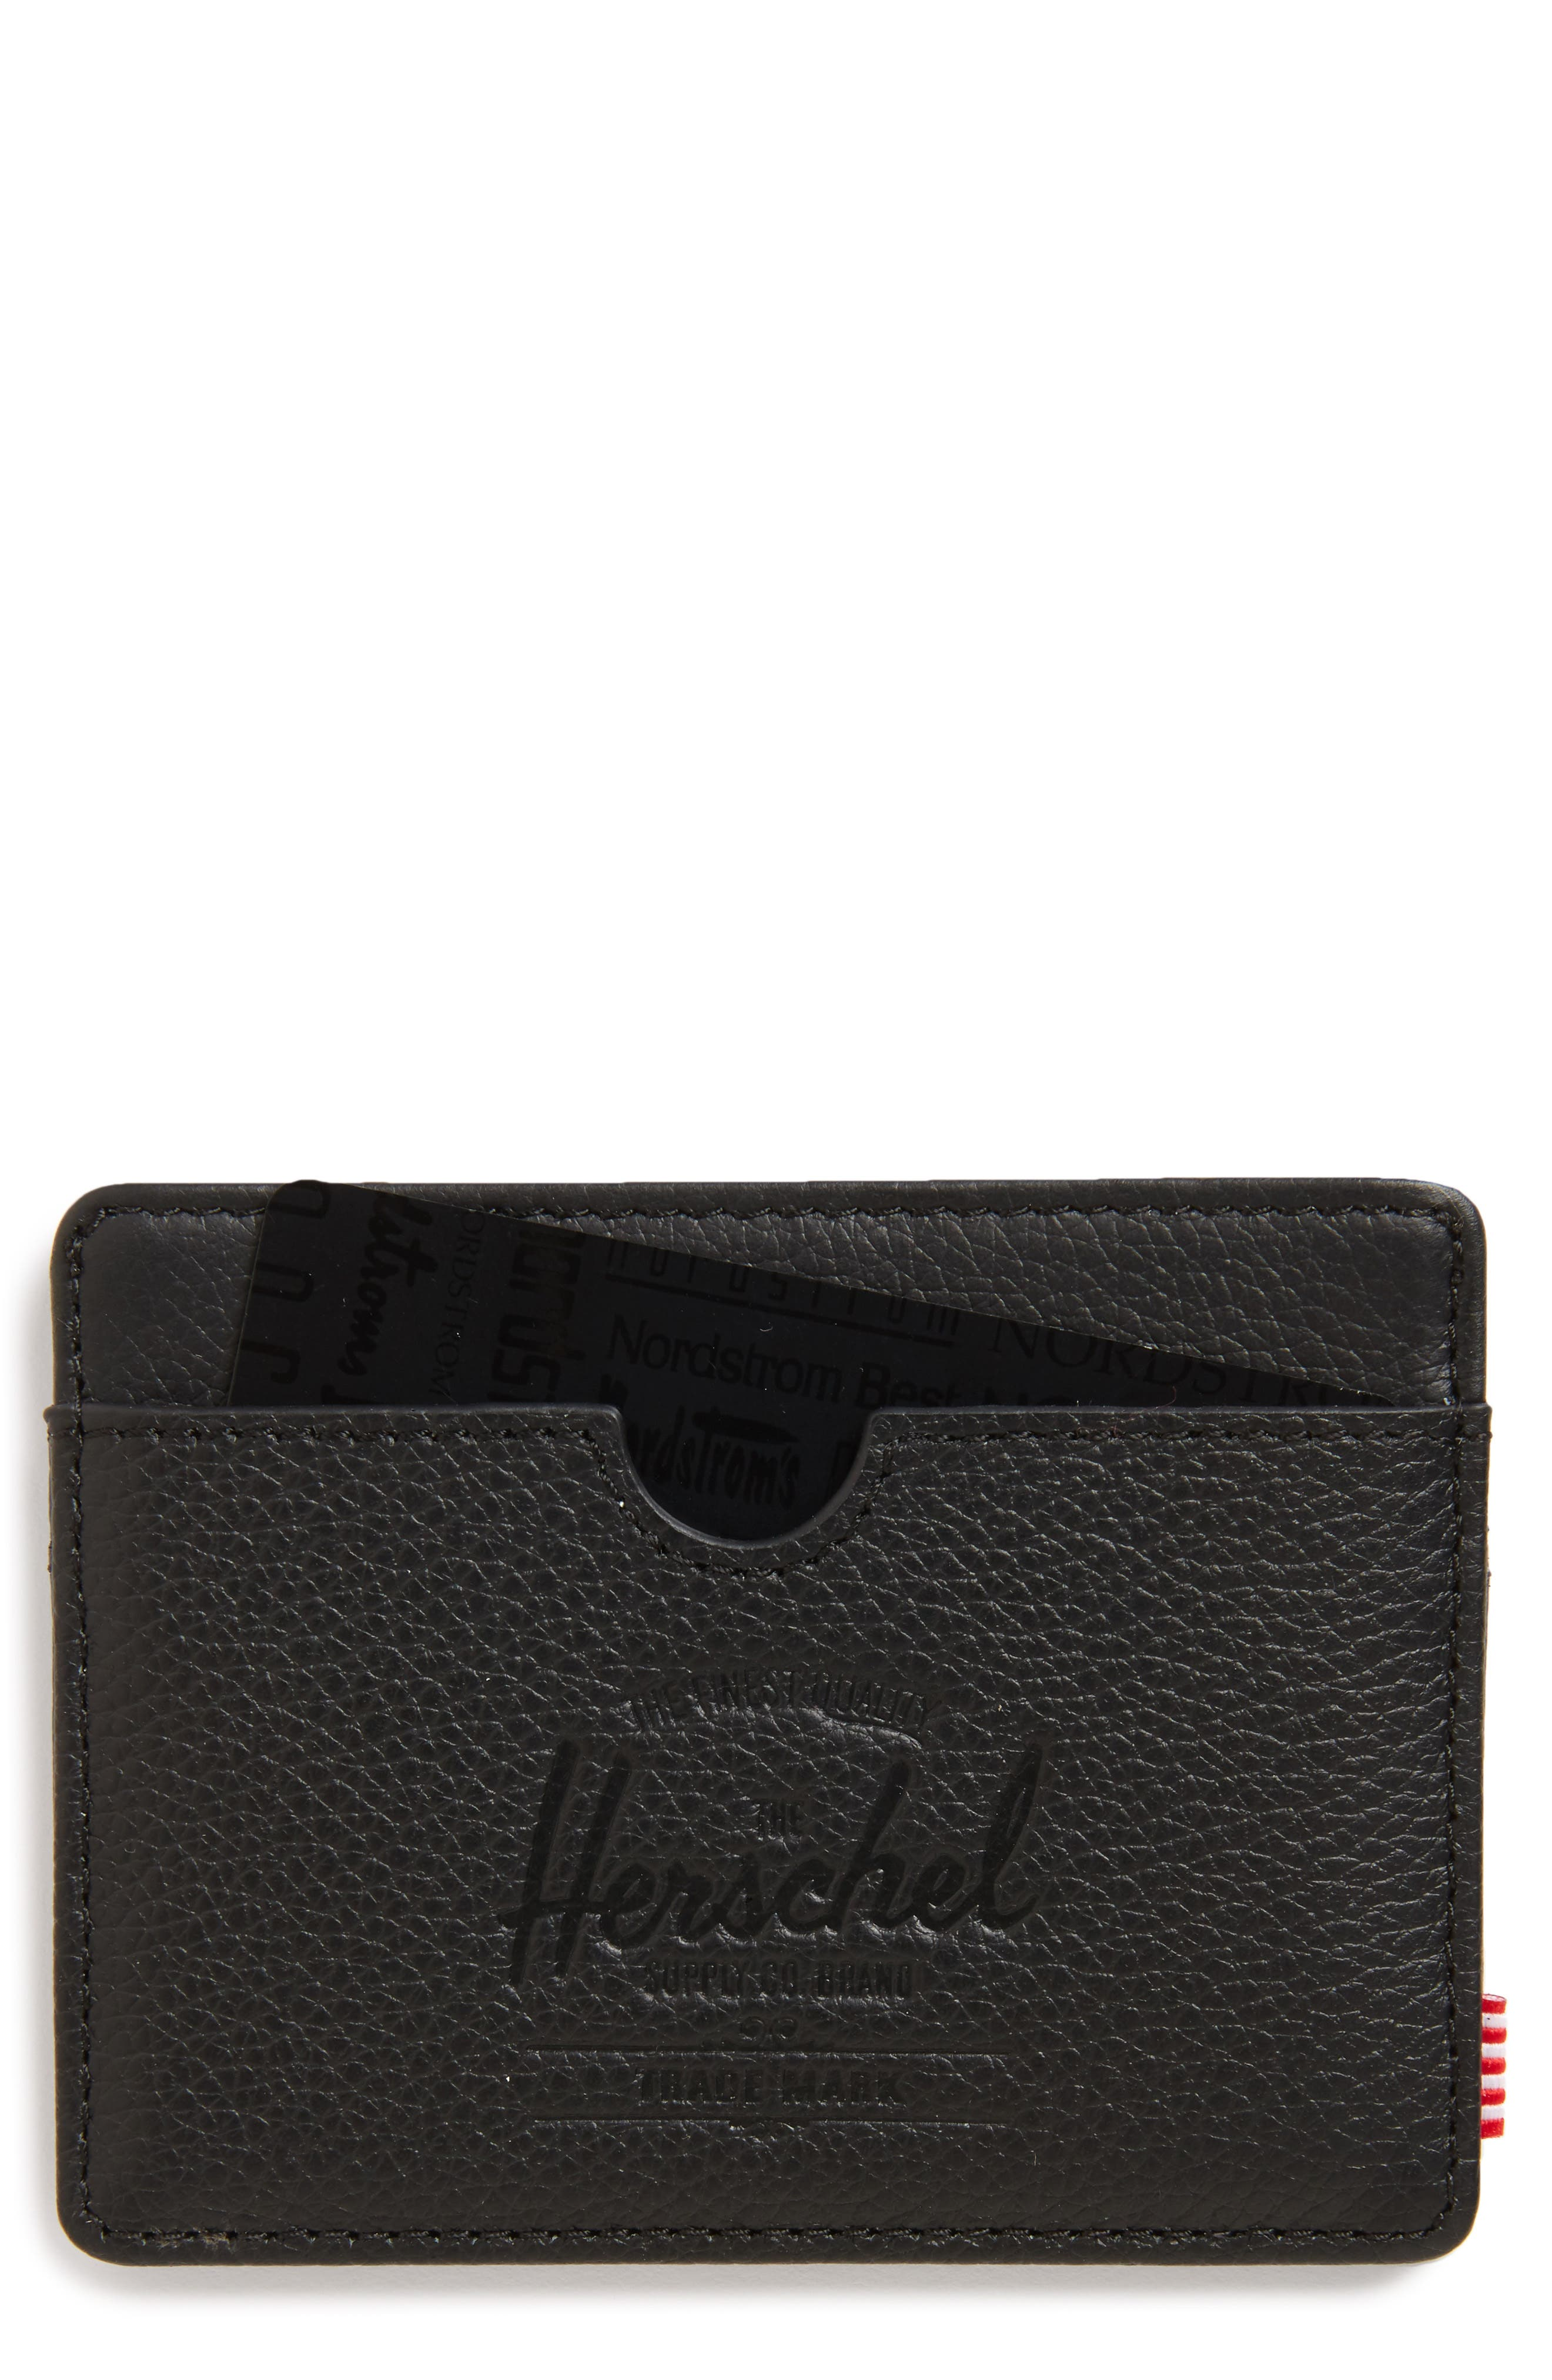 Main Image - Herschel Supply Co. Charlie Leather Card Case